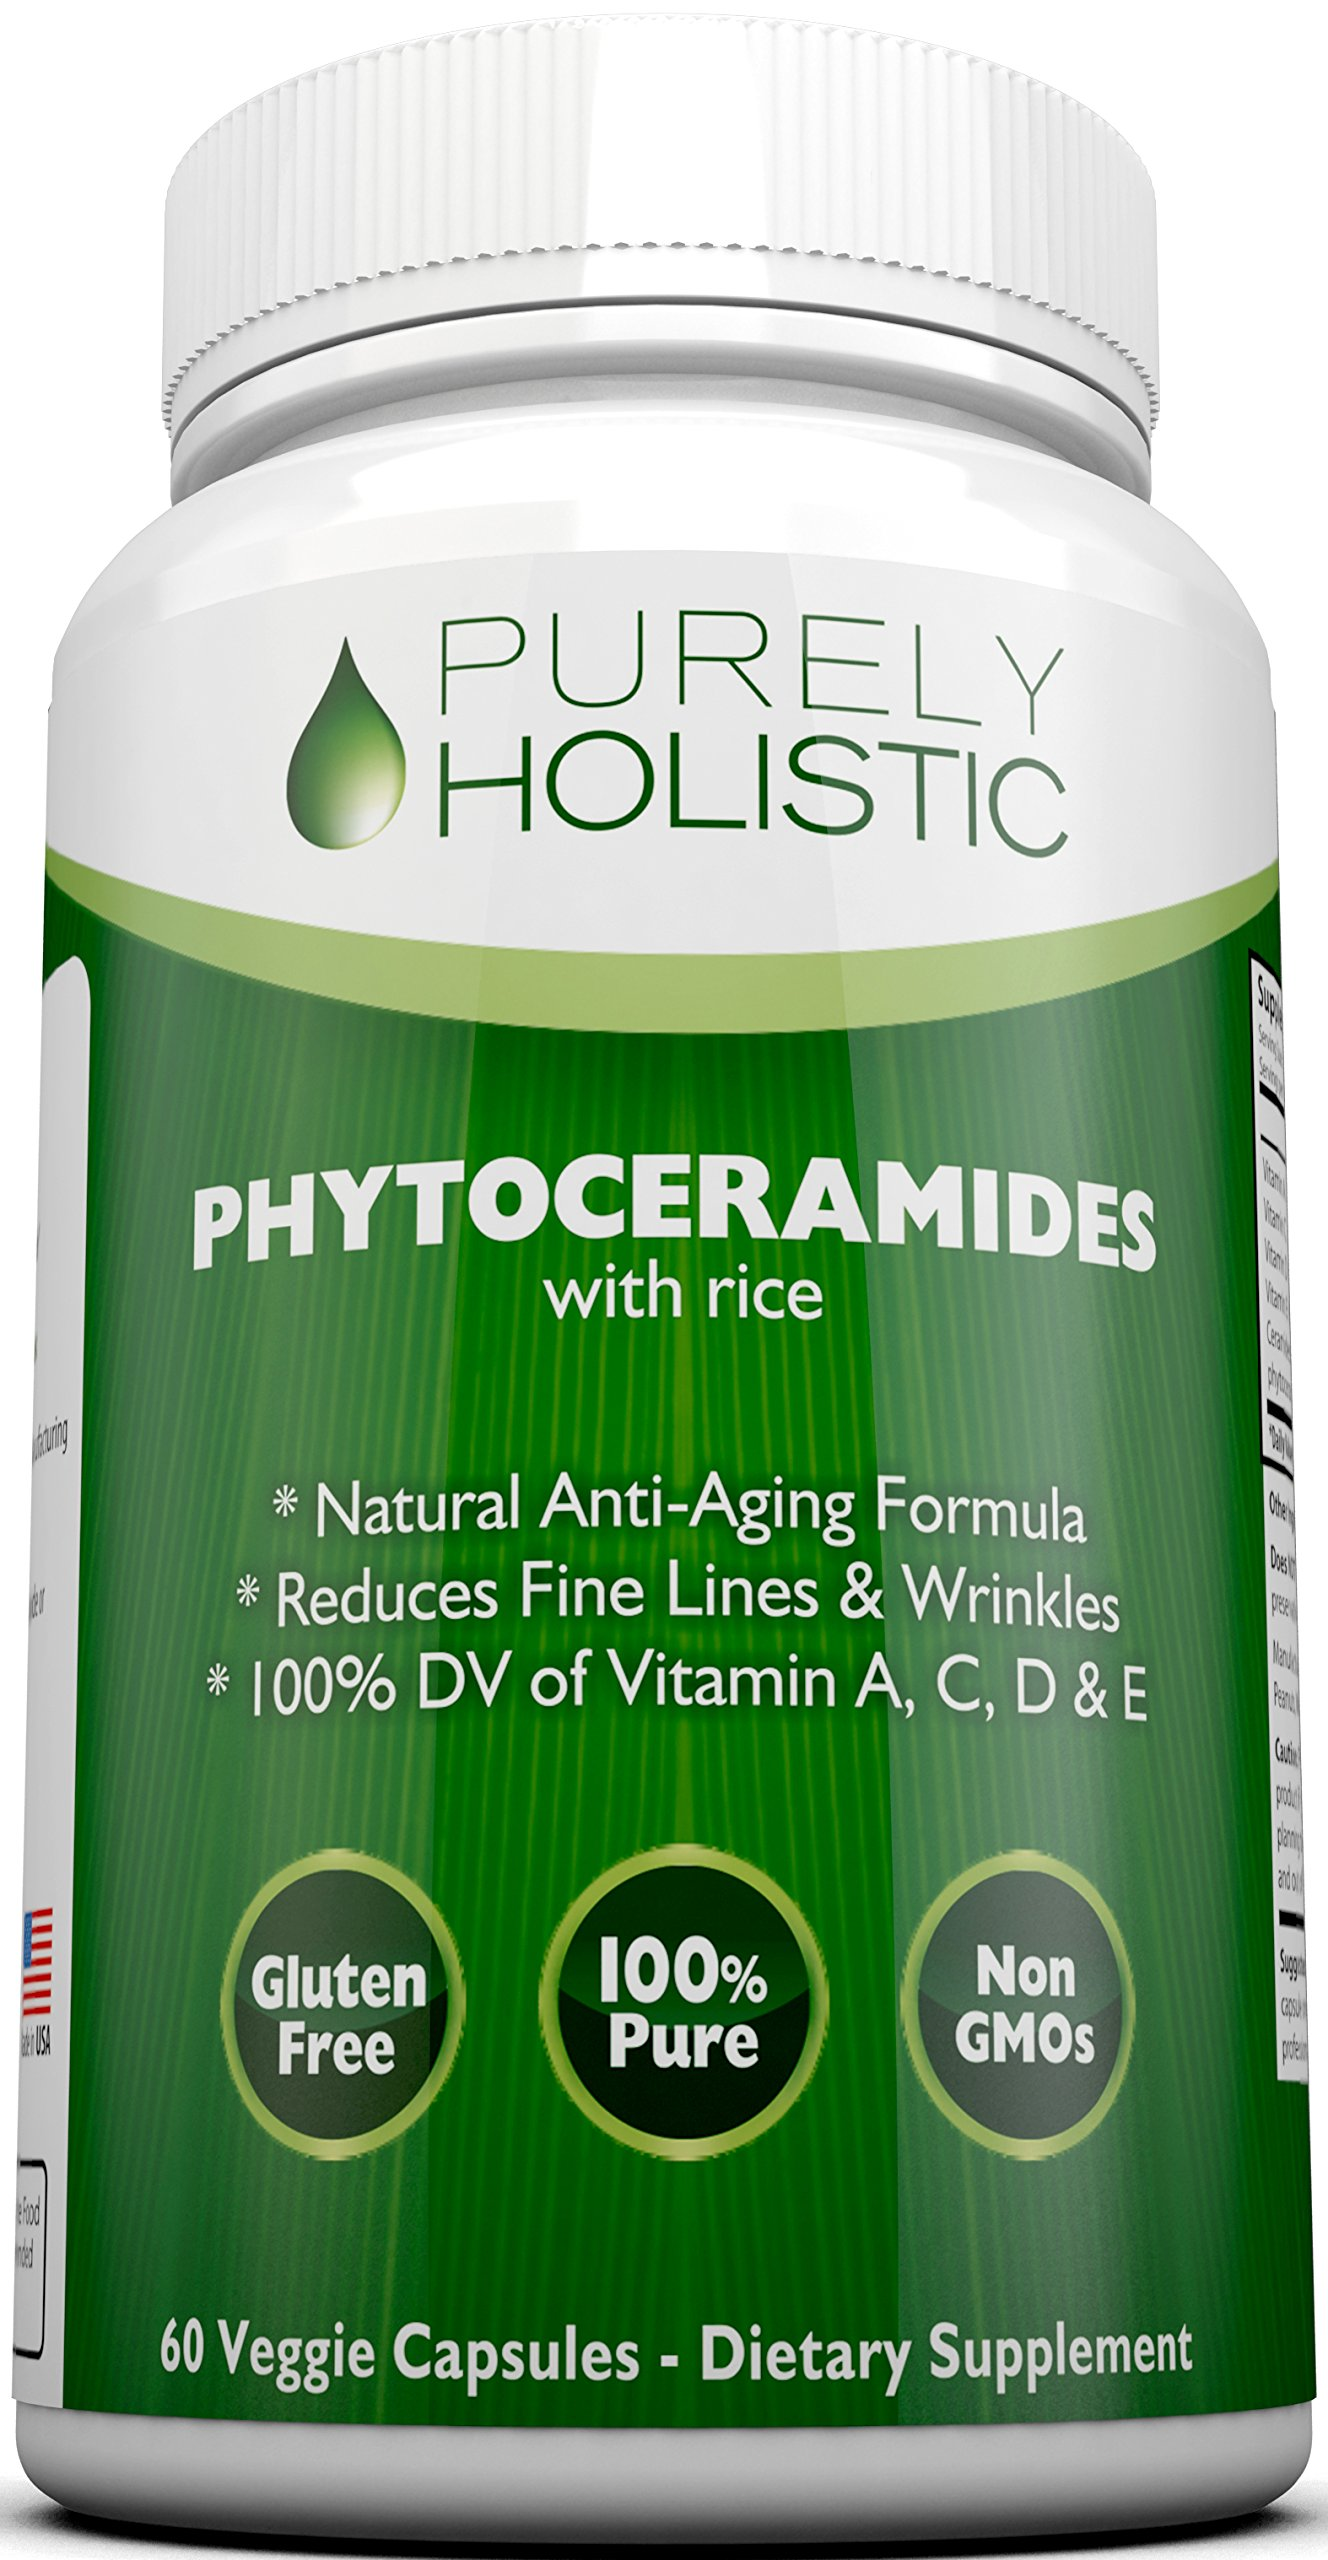 Phytoceramides Skin Therapy Supplement 60 Capsules - 100% - Rice Based, 100% Natural, Vegetarian Capsules, 100% DV of Vitamin A,C,D & E with No Fillers or Artificial Ingredients